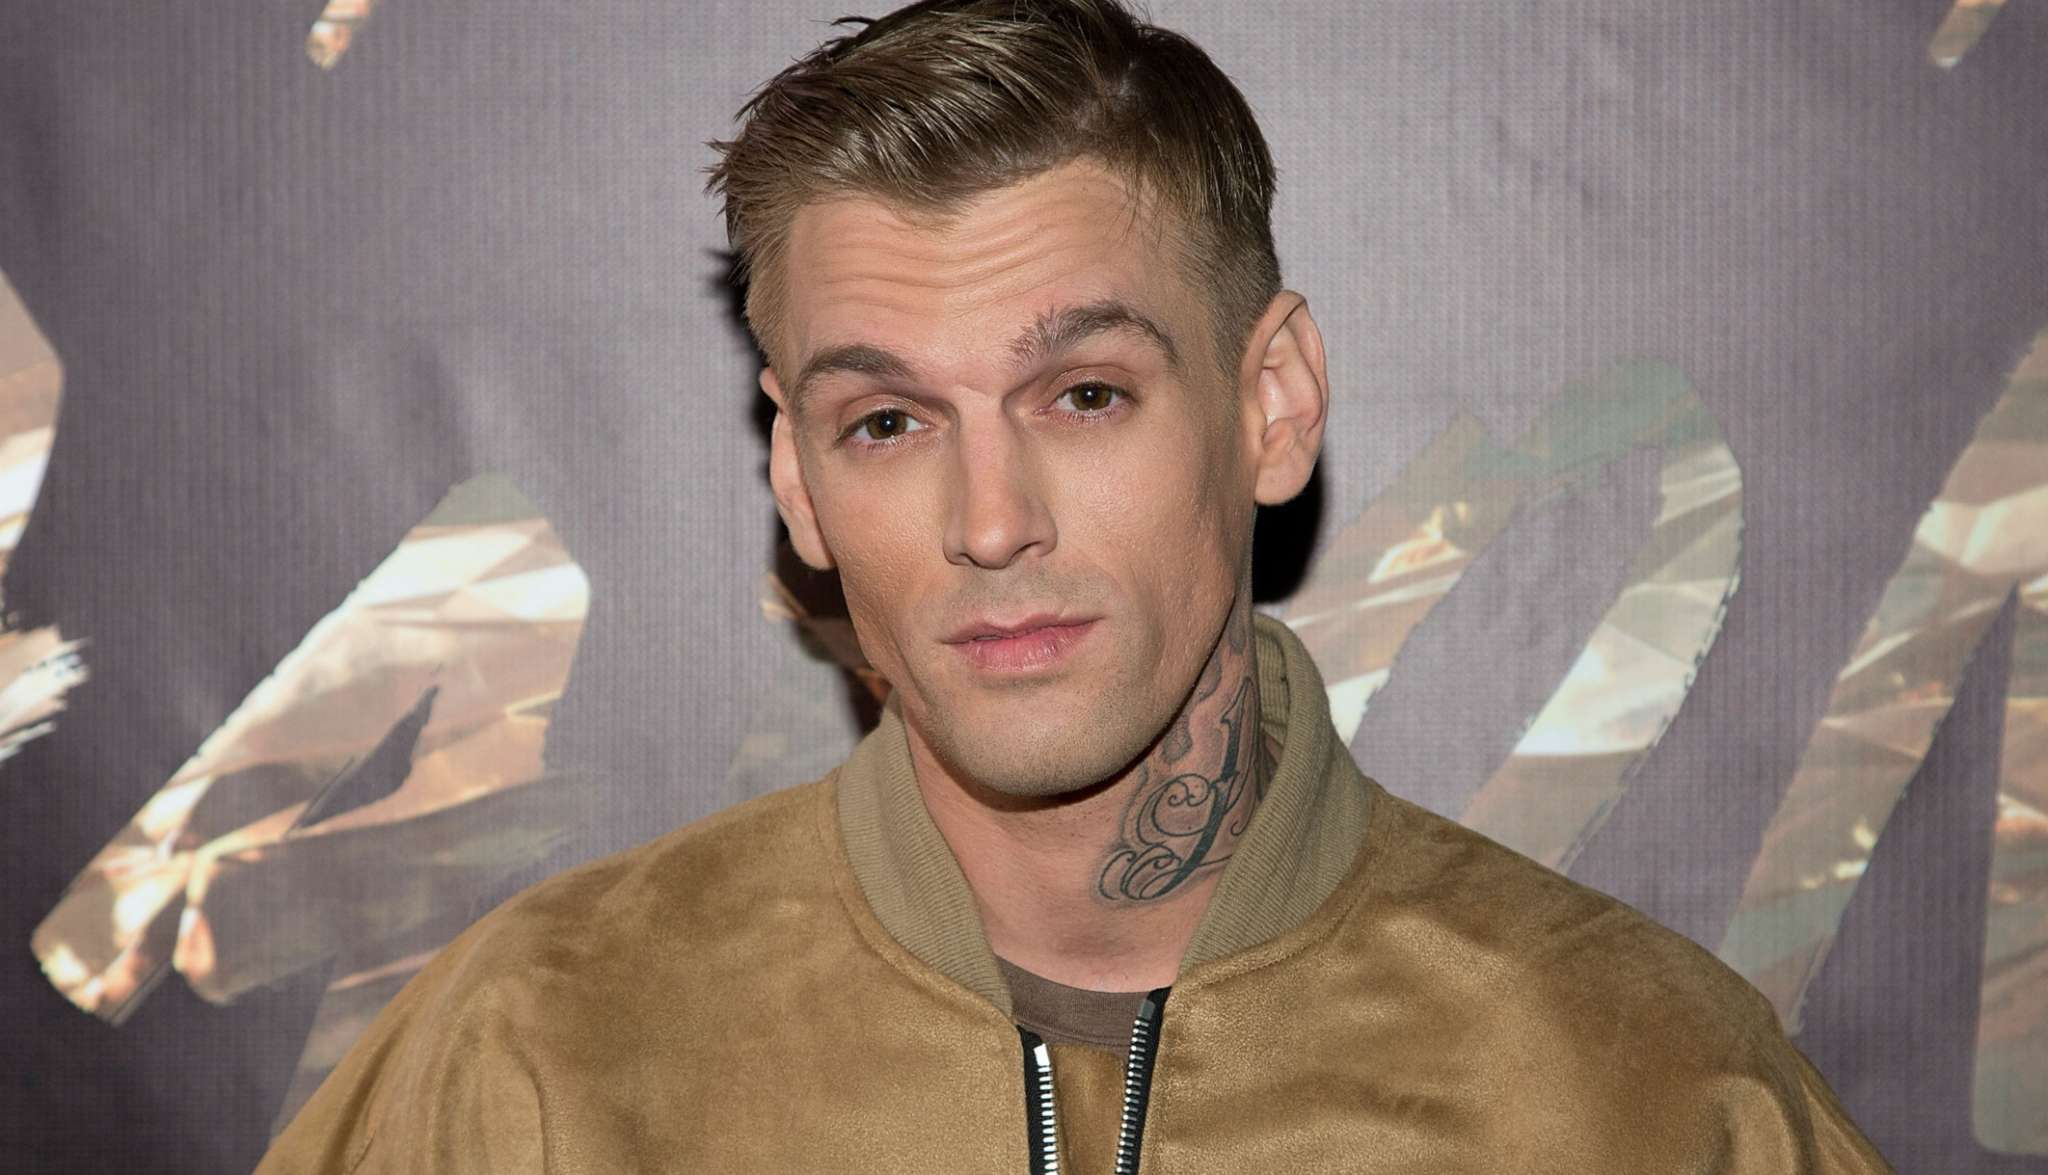 Aaron Carter Reveals His Diagnosis & What Pills He's Been Prescribed